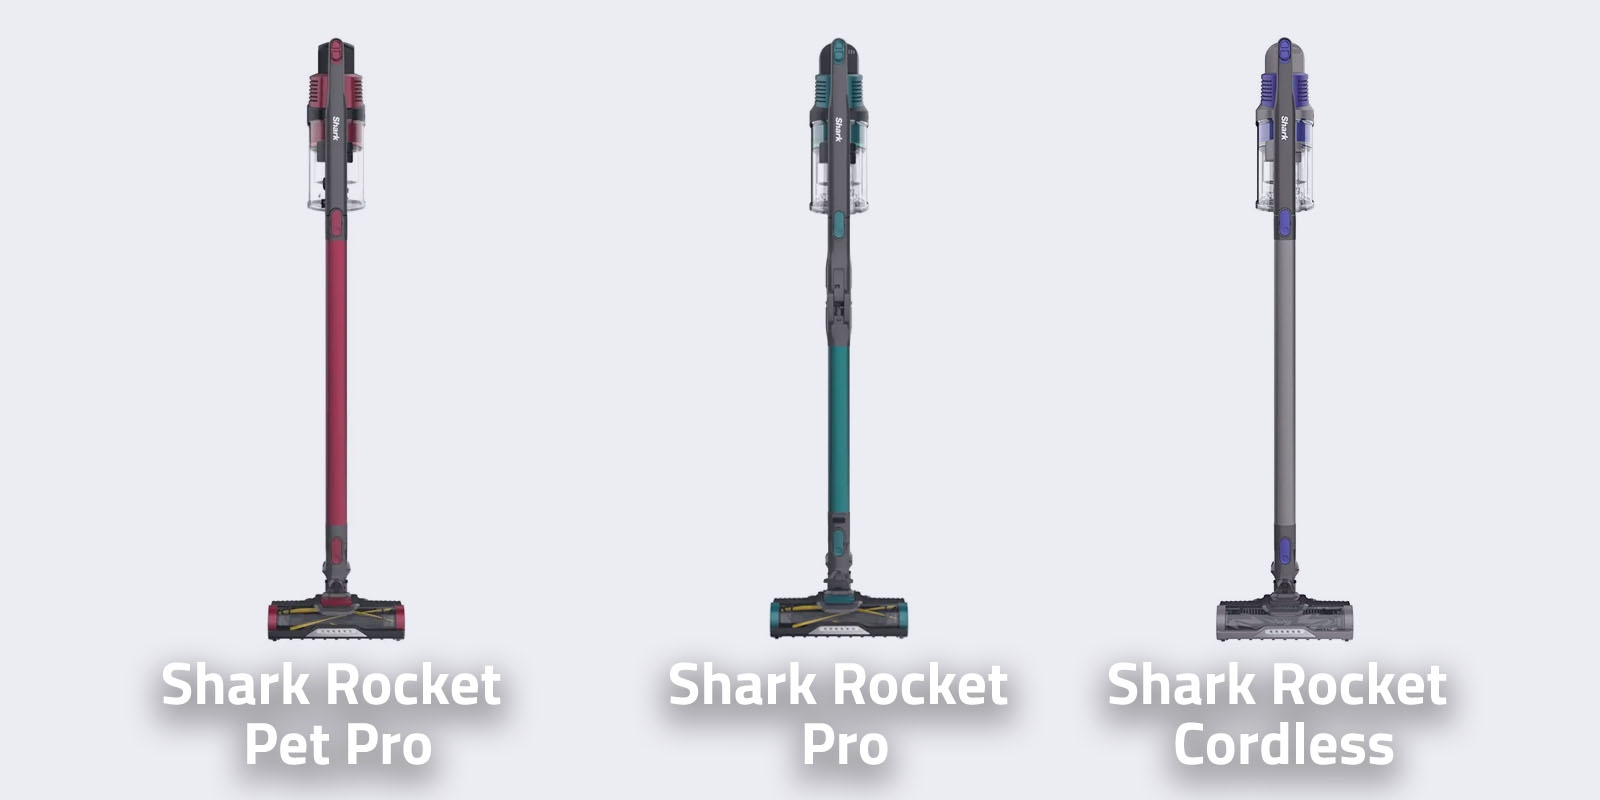 Shark Rocket Pet Pro vs Shark Rocket Pro vs Shark Rocket Cordless